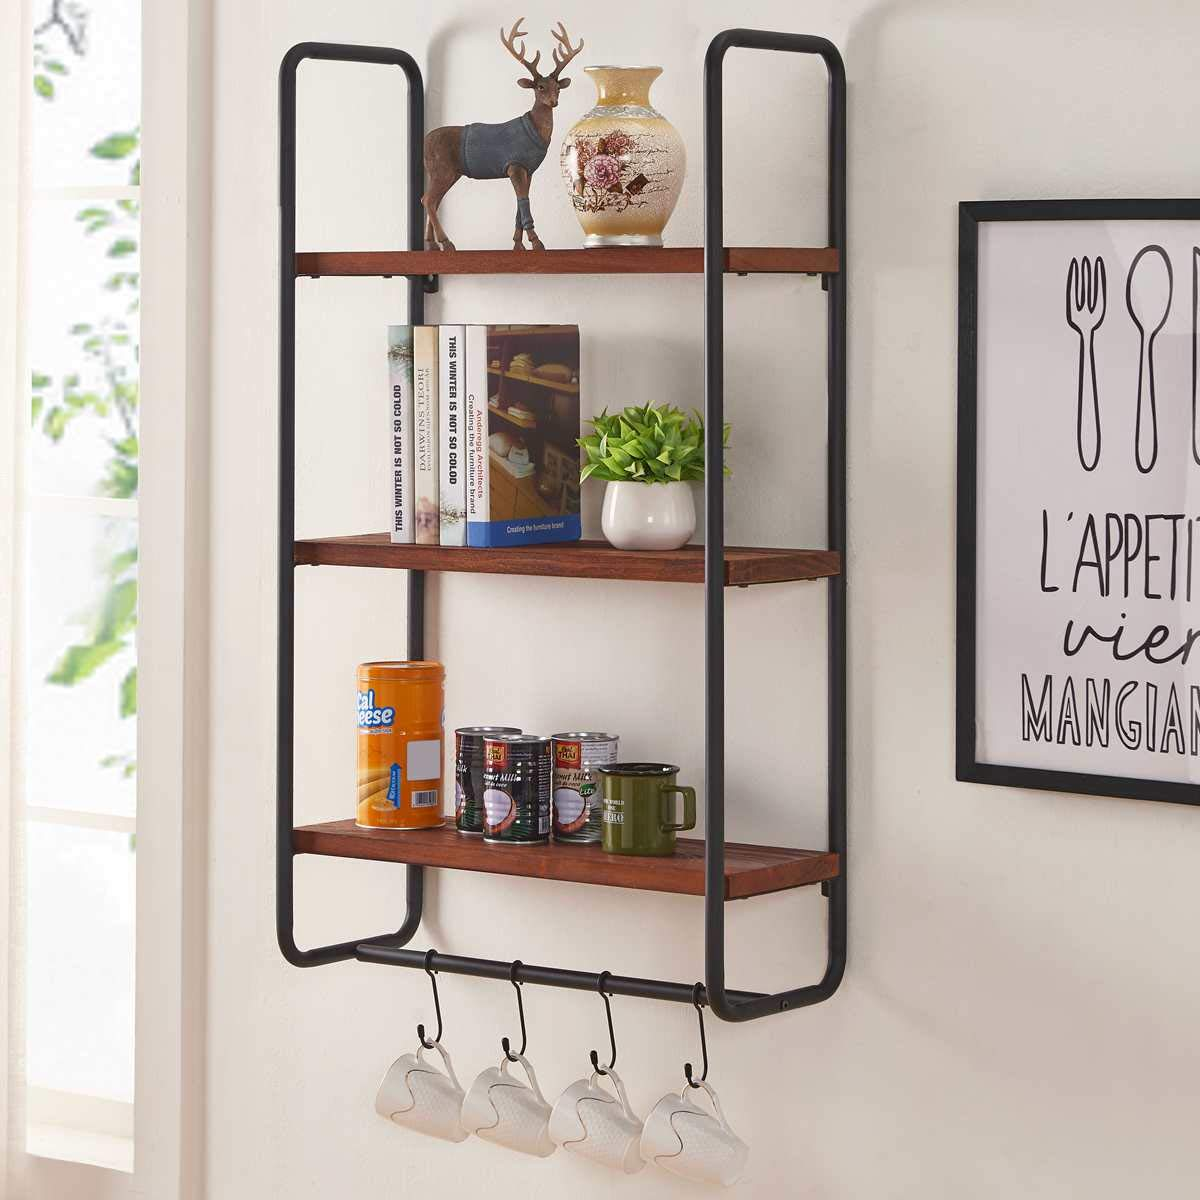 Bon Augure Solid Wood Wall Shelves With Hooks, 3-tier Shelf Wall Mounted  For Kitchen Bathroom Bedroom And Office, Rustic Entryway Hanging Shelf Unit